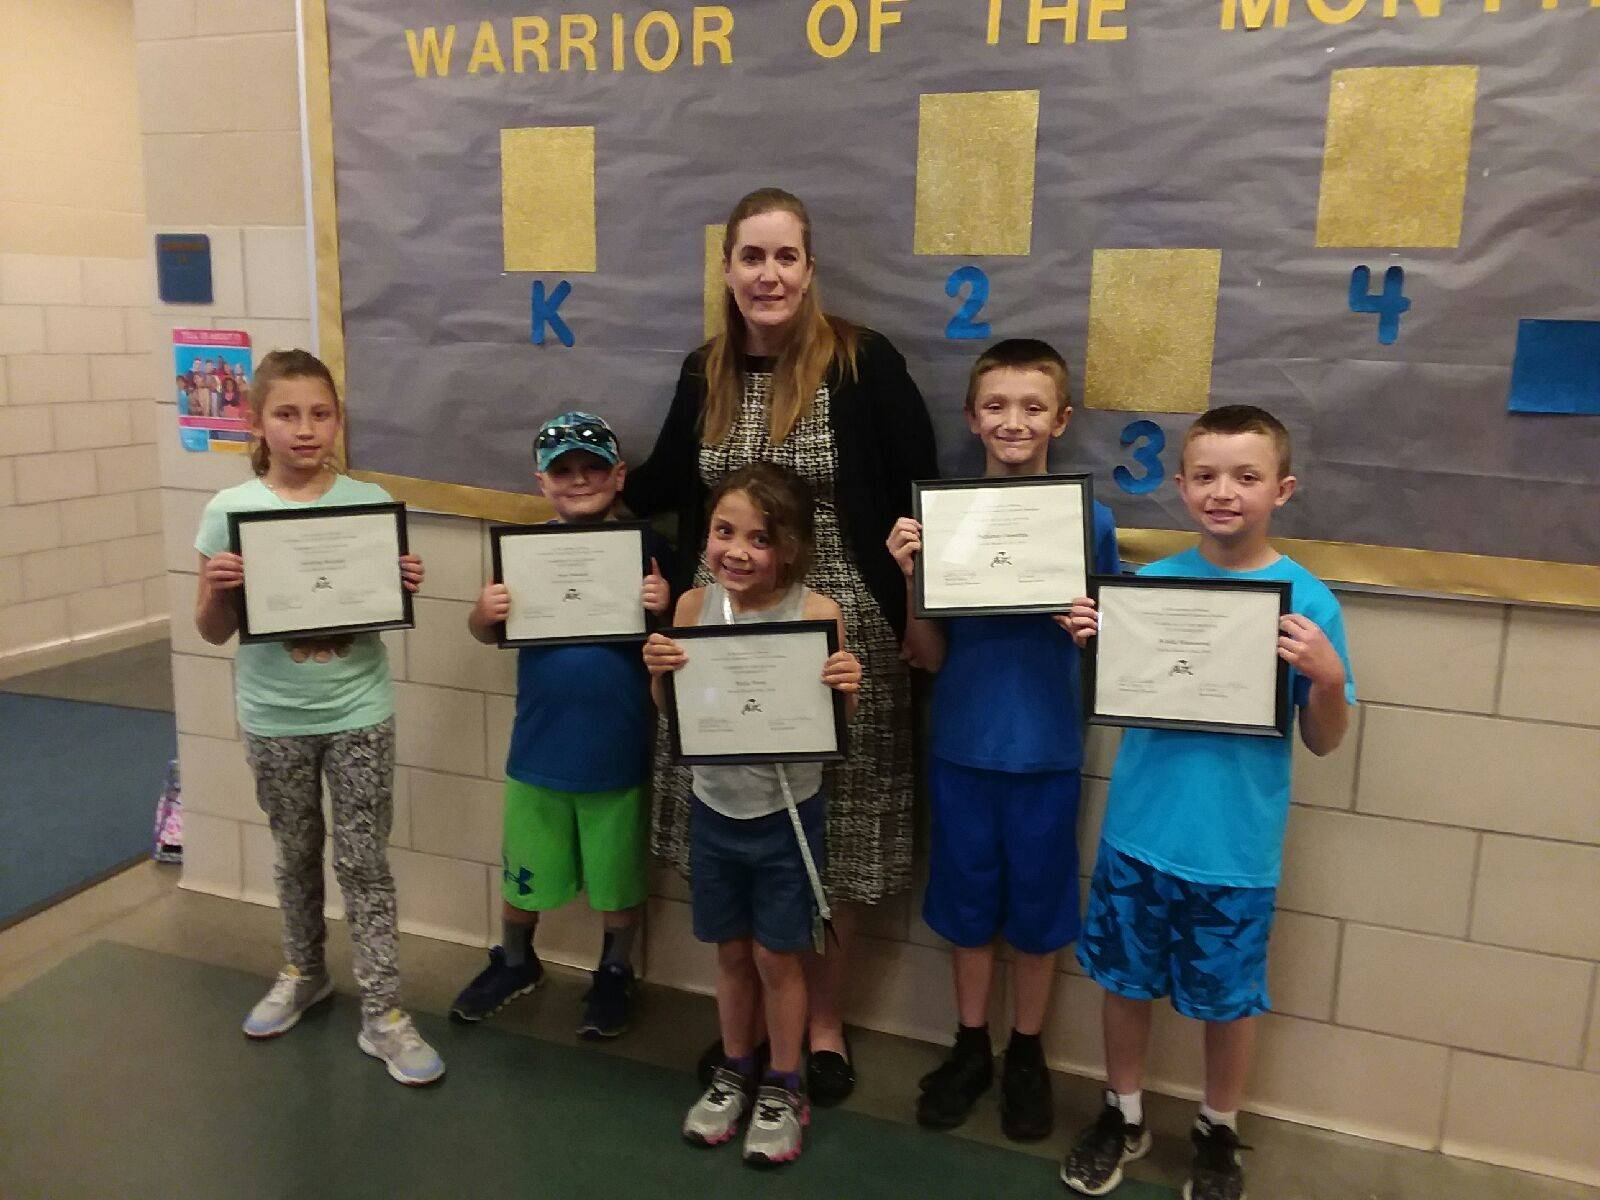 warriors of the month may 2018